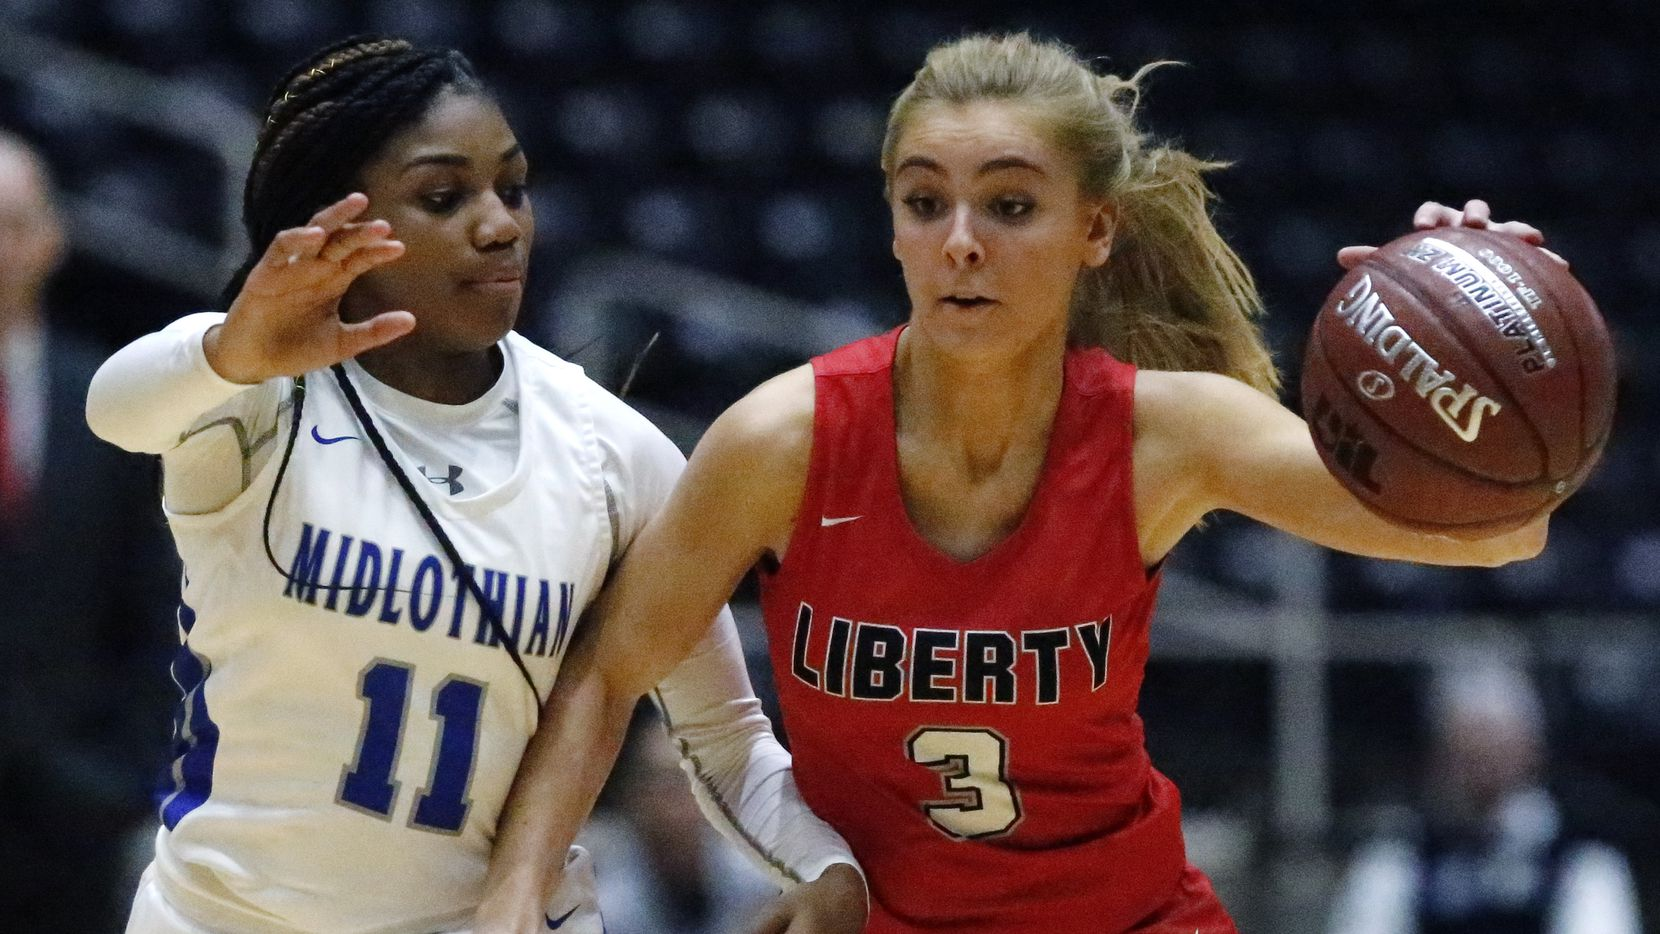 Midlothian High School guard Maykayla Jackson (11) defends Frisco Liberty High School guard Lily Ziemkiewicz (3) during the first half as Midlothian High School hosted Frisco Liberty High School in the Class 5A Region II championship girls basketball game at the Curtis Culwell Center in Garland on Saturday, February 29, 2020.